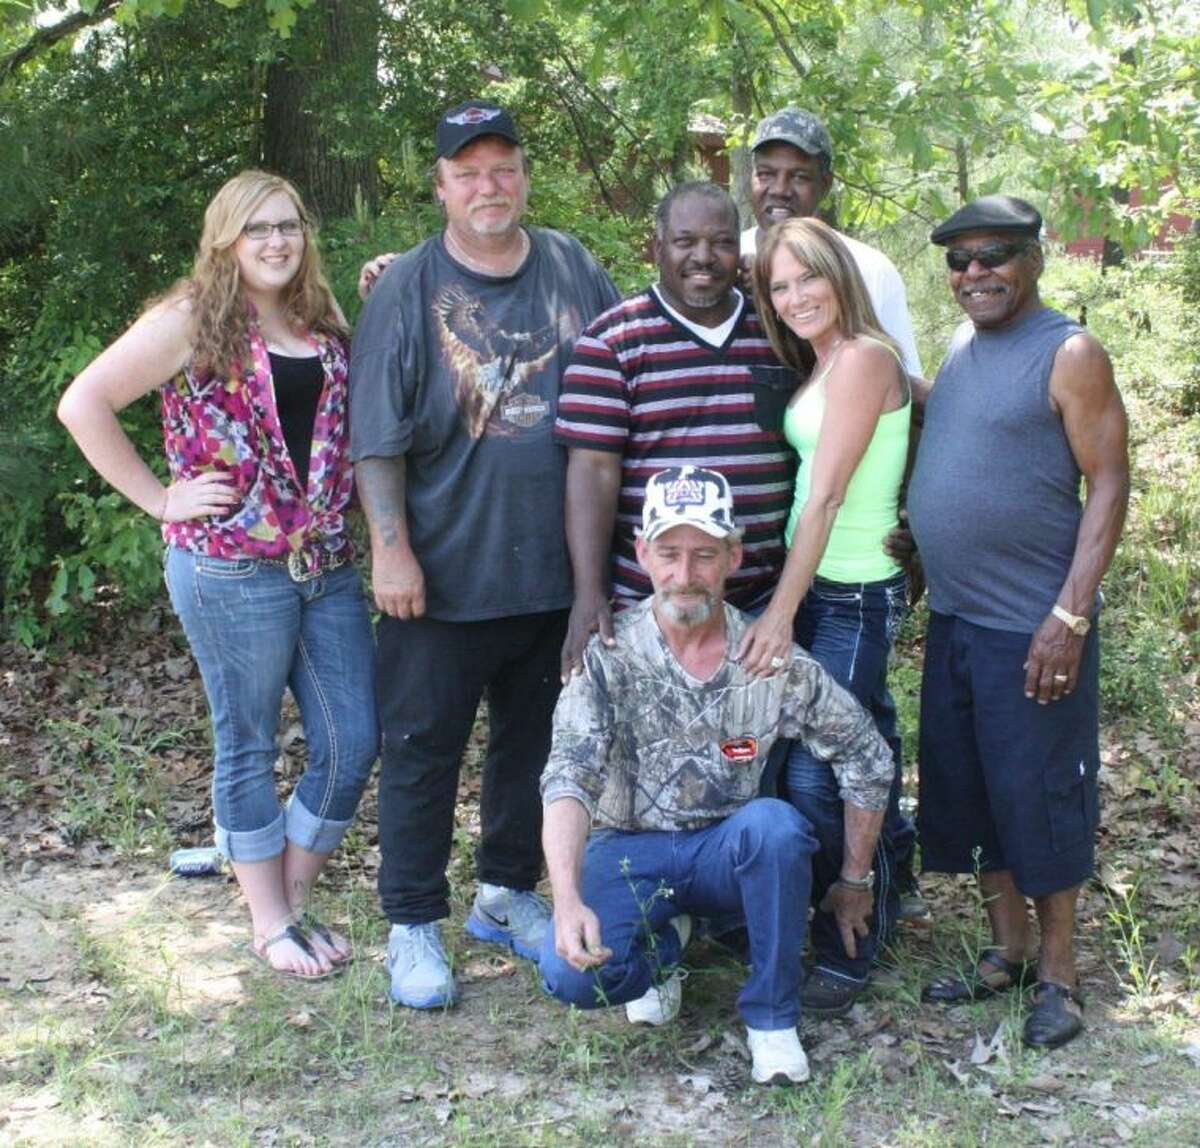 """The Coopers stand here not with friends but with family in bond and love. Pictured are (back row) Nathaniel Cooper, (middle row, left to right) Allison Jeffers, Dan Dempsey, Wayne Cooper Vanessa Black, Roosevelt Cooper; and (front row) Larry """"Bubba"""" Craven."""